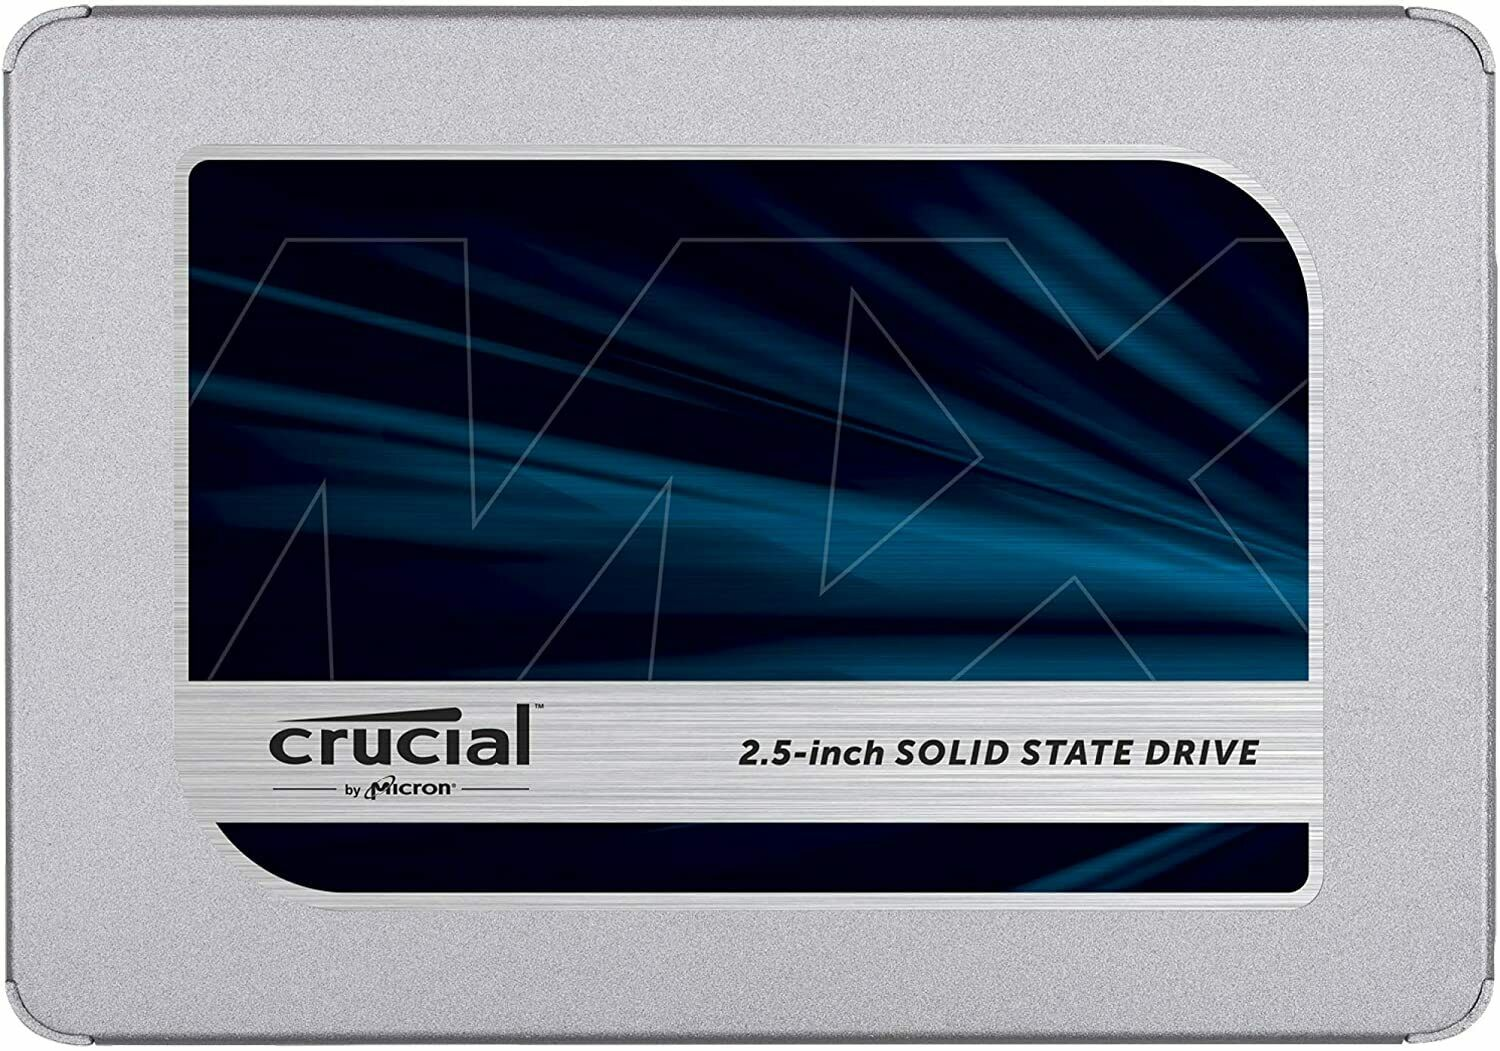 Crucial MX500 500 GB,Internal,2.5 inch (CT500MX500SSD1) Solid State Drive. Buy it now for 57.89